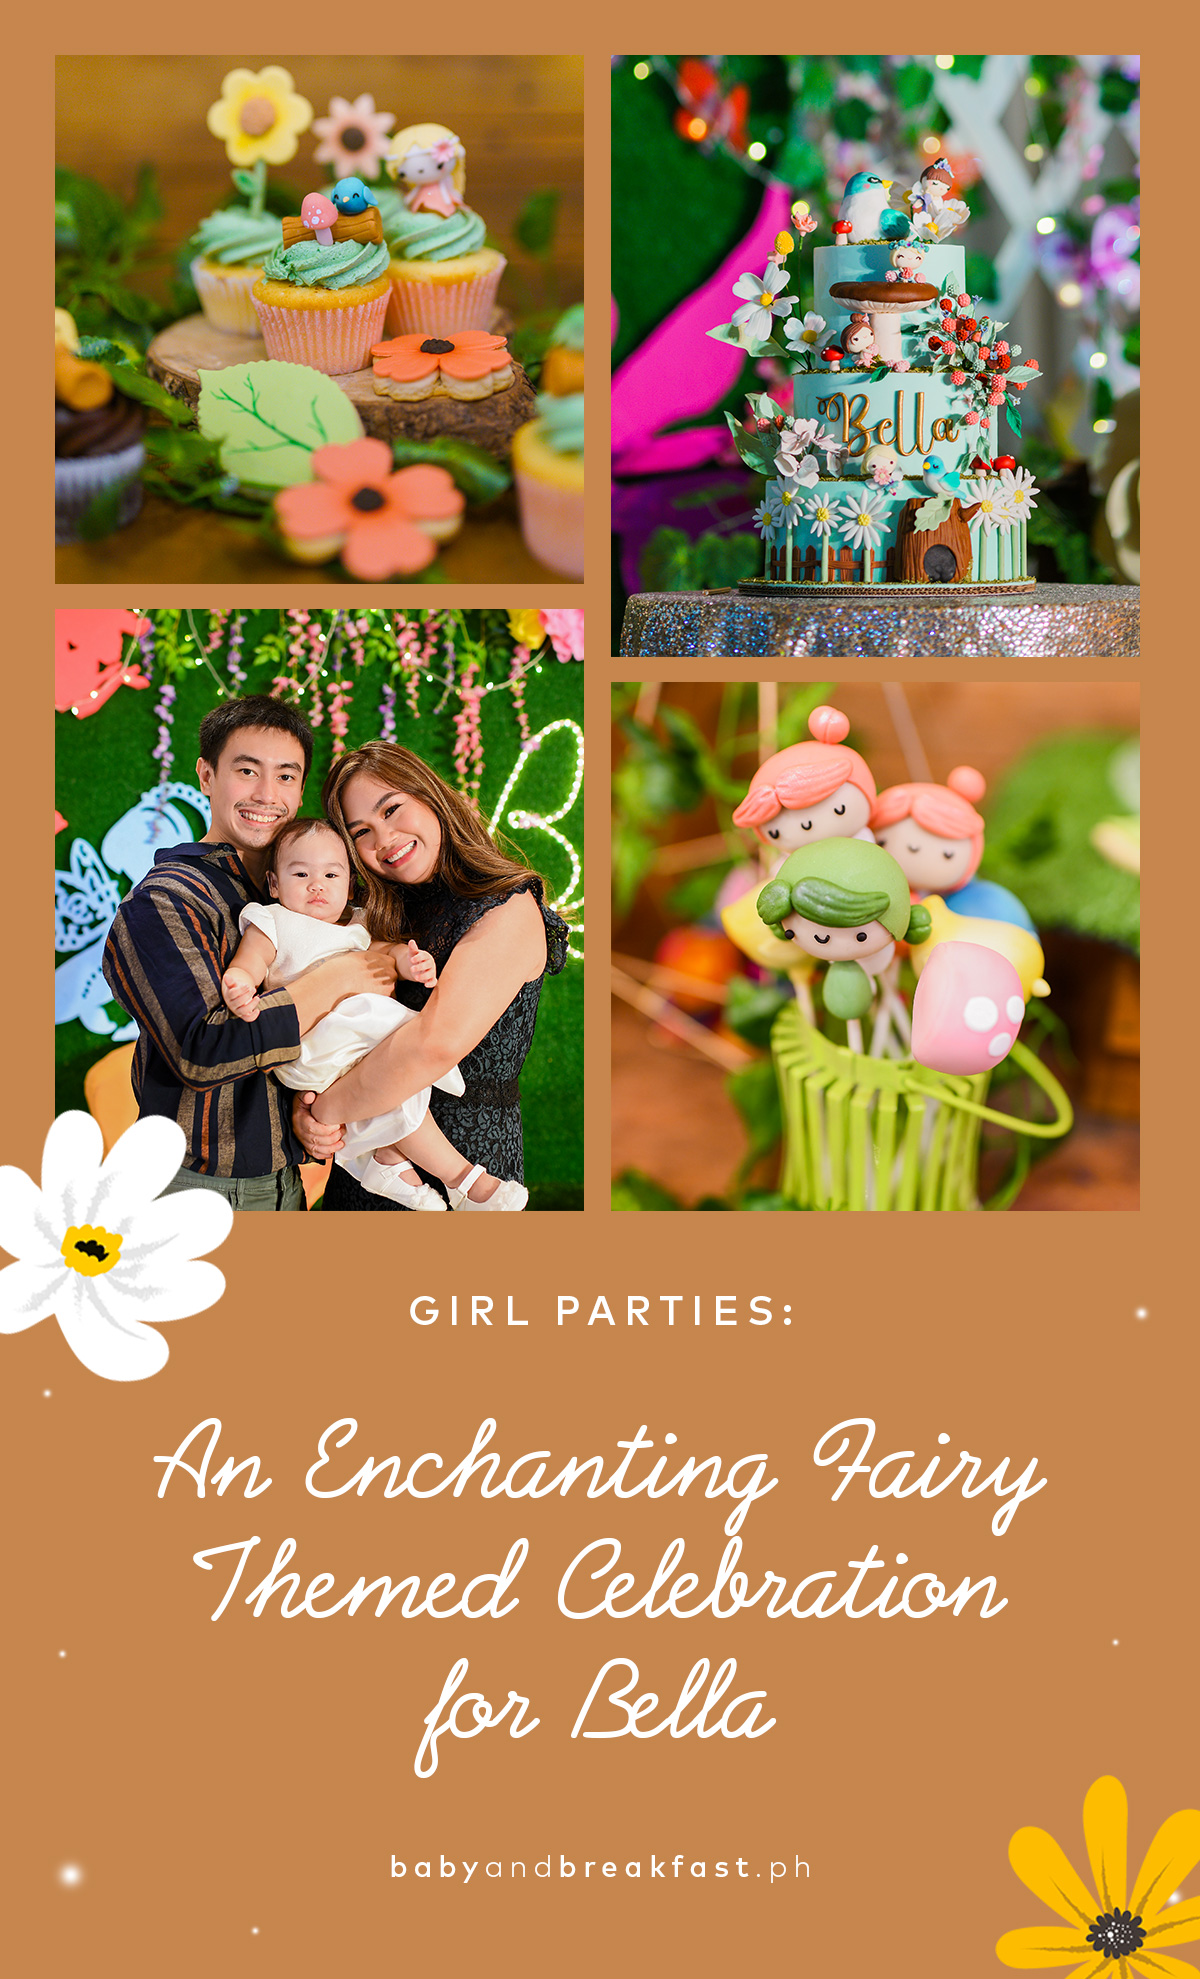 An Enchanting Fairy Themed Celebration for Bella